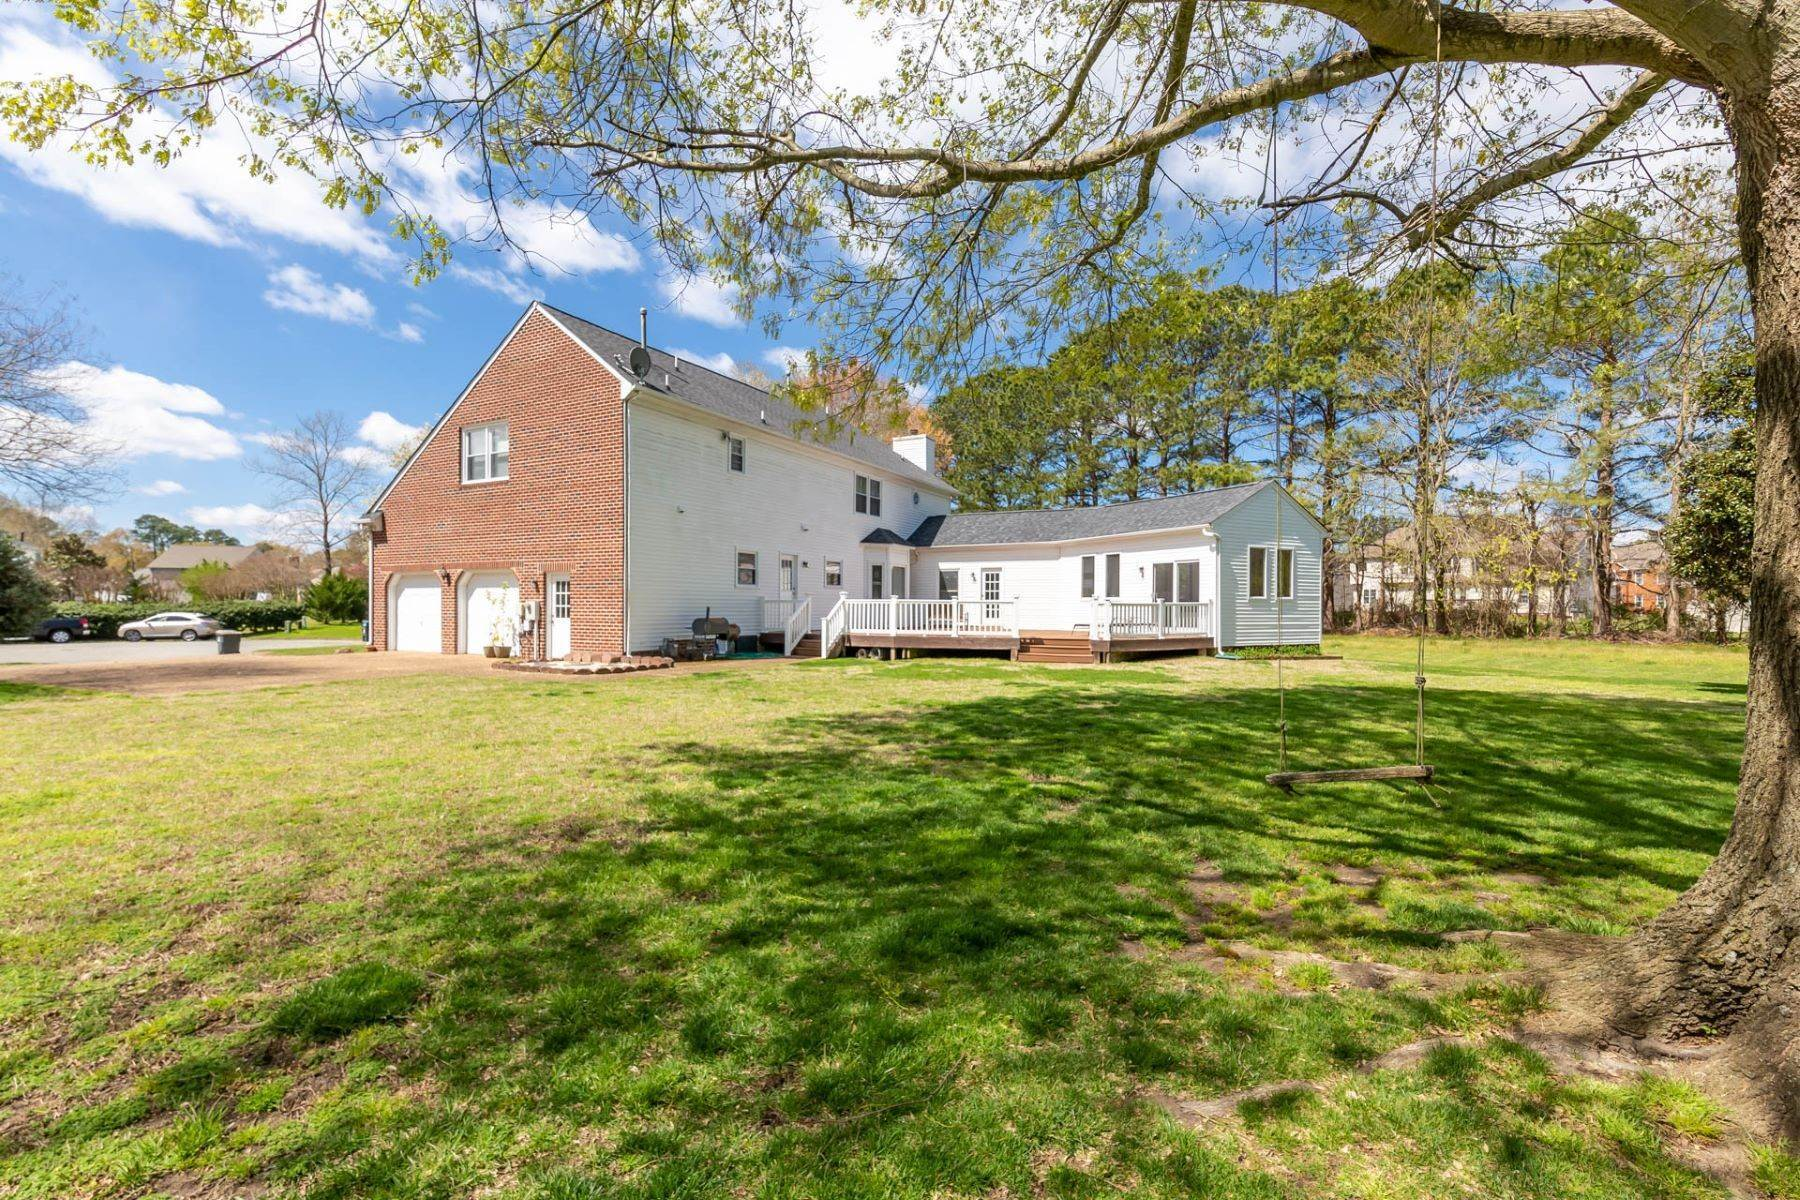 37. Single Family Homes for Sale at Valmoore Estates 4 Tennis Circle Poquoson, Virginia 23662 United States